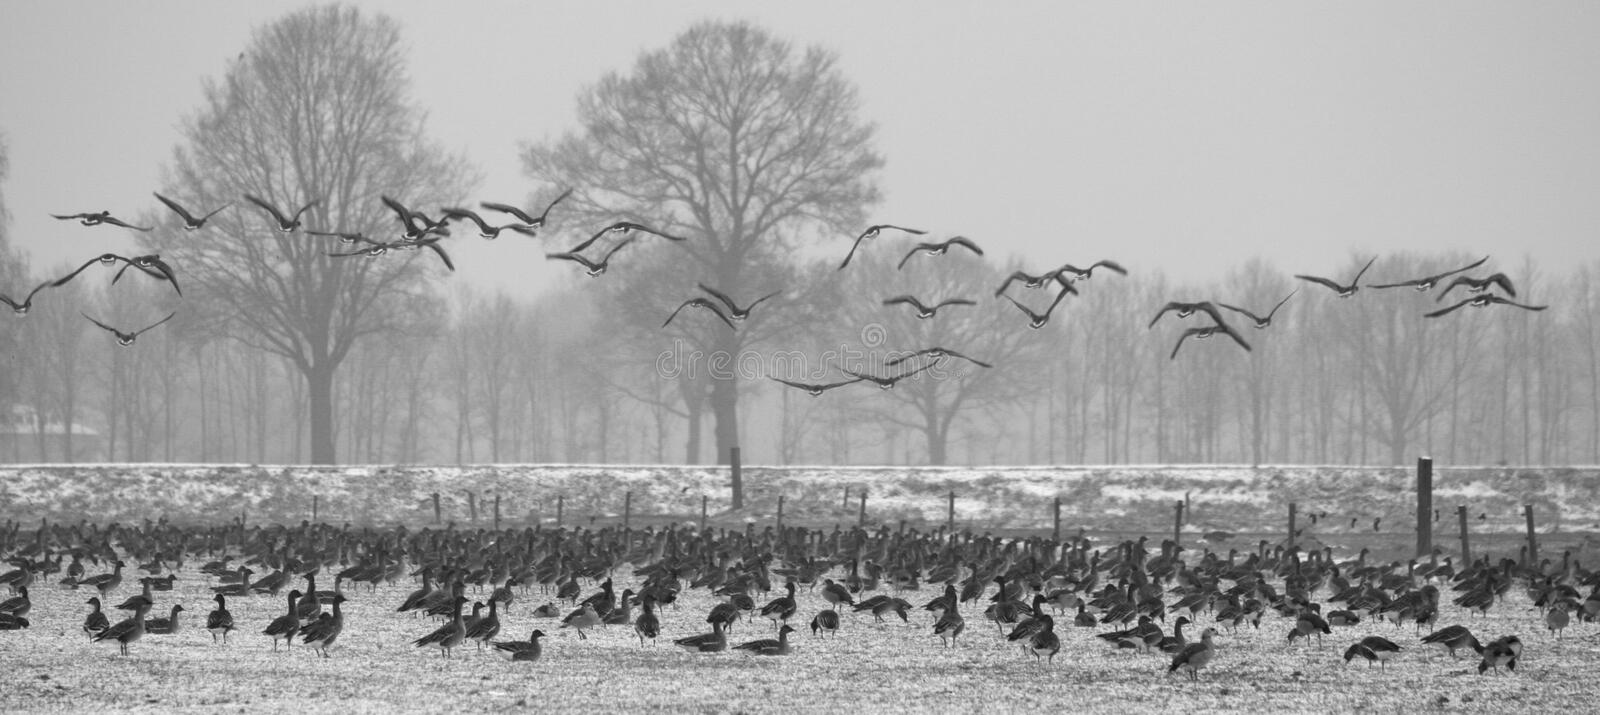 Migratory geese foraging on grassland in winter royalty free stock photos